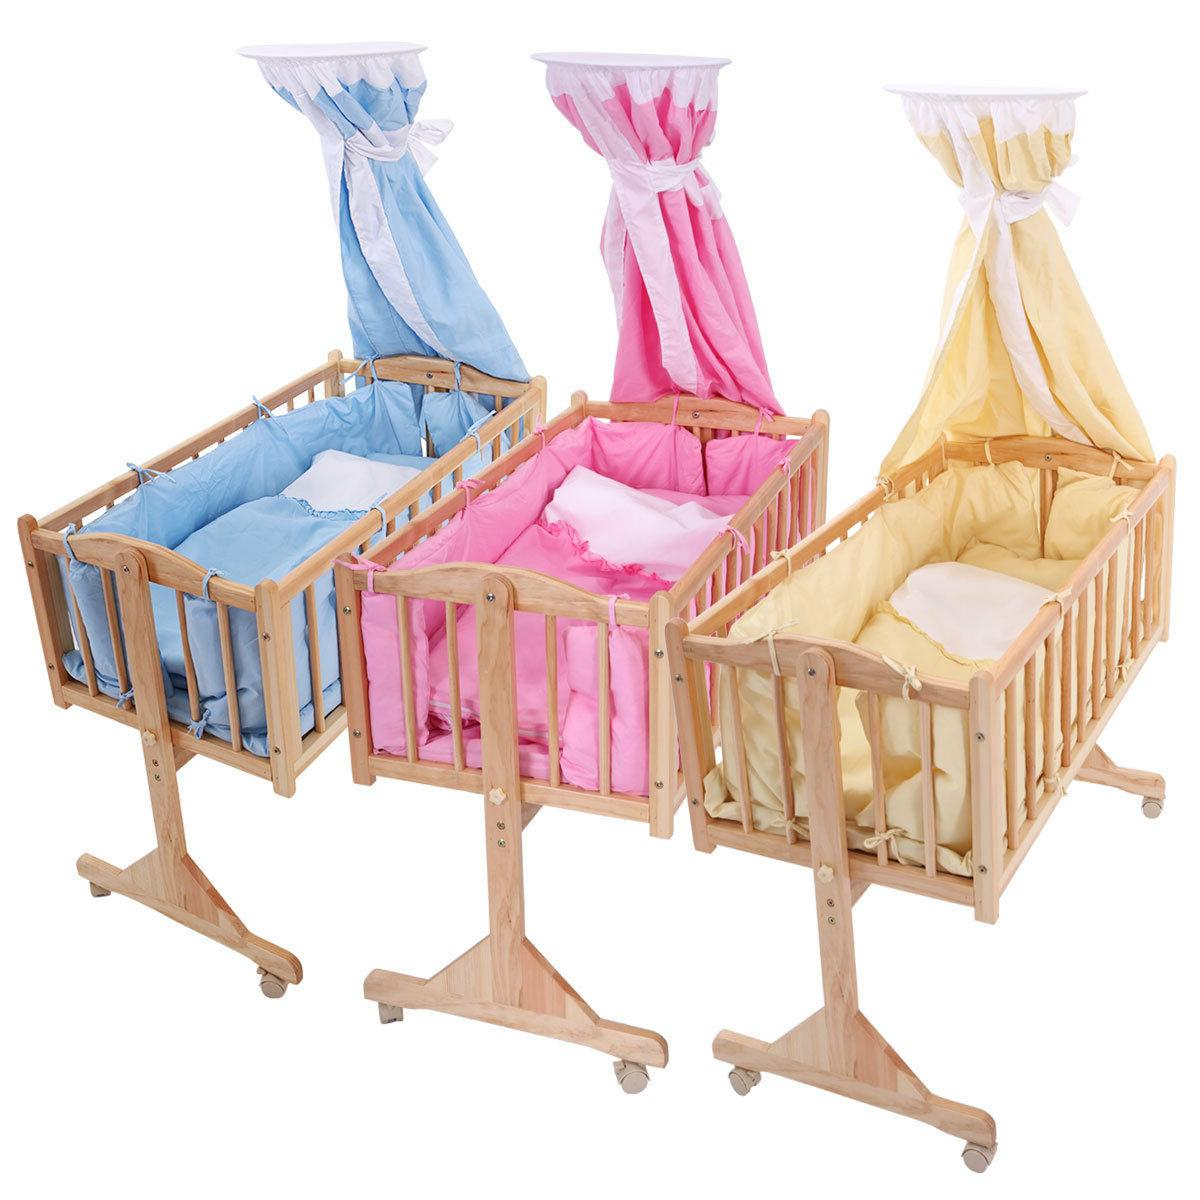 pine wood newborn baby toddler bed cradle